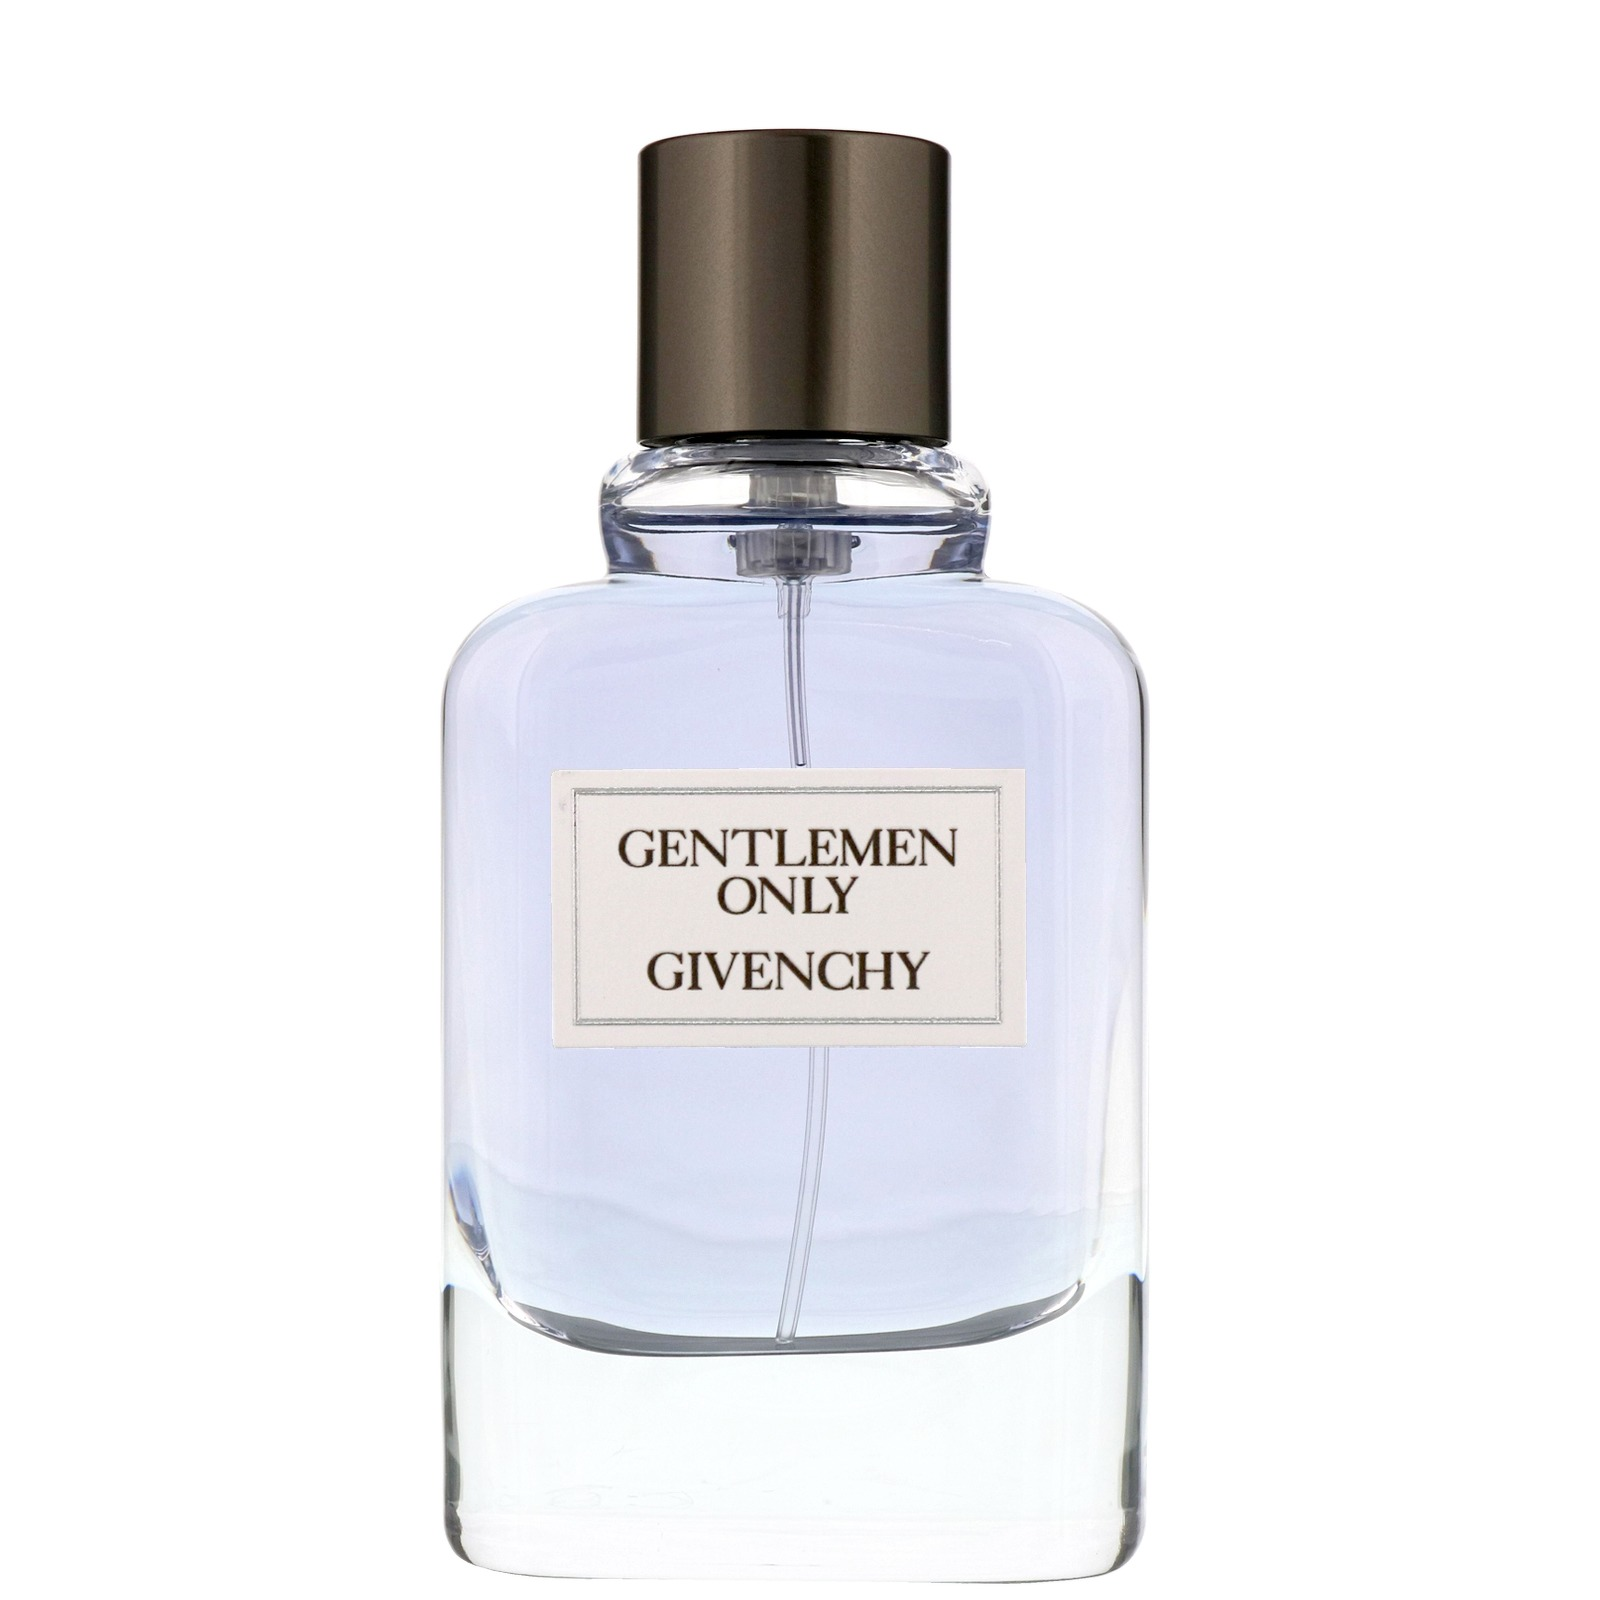 Givenchy Gentlemen Only Eau de Toilette Spray 50ml